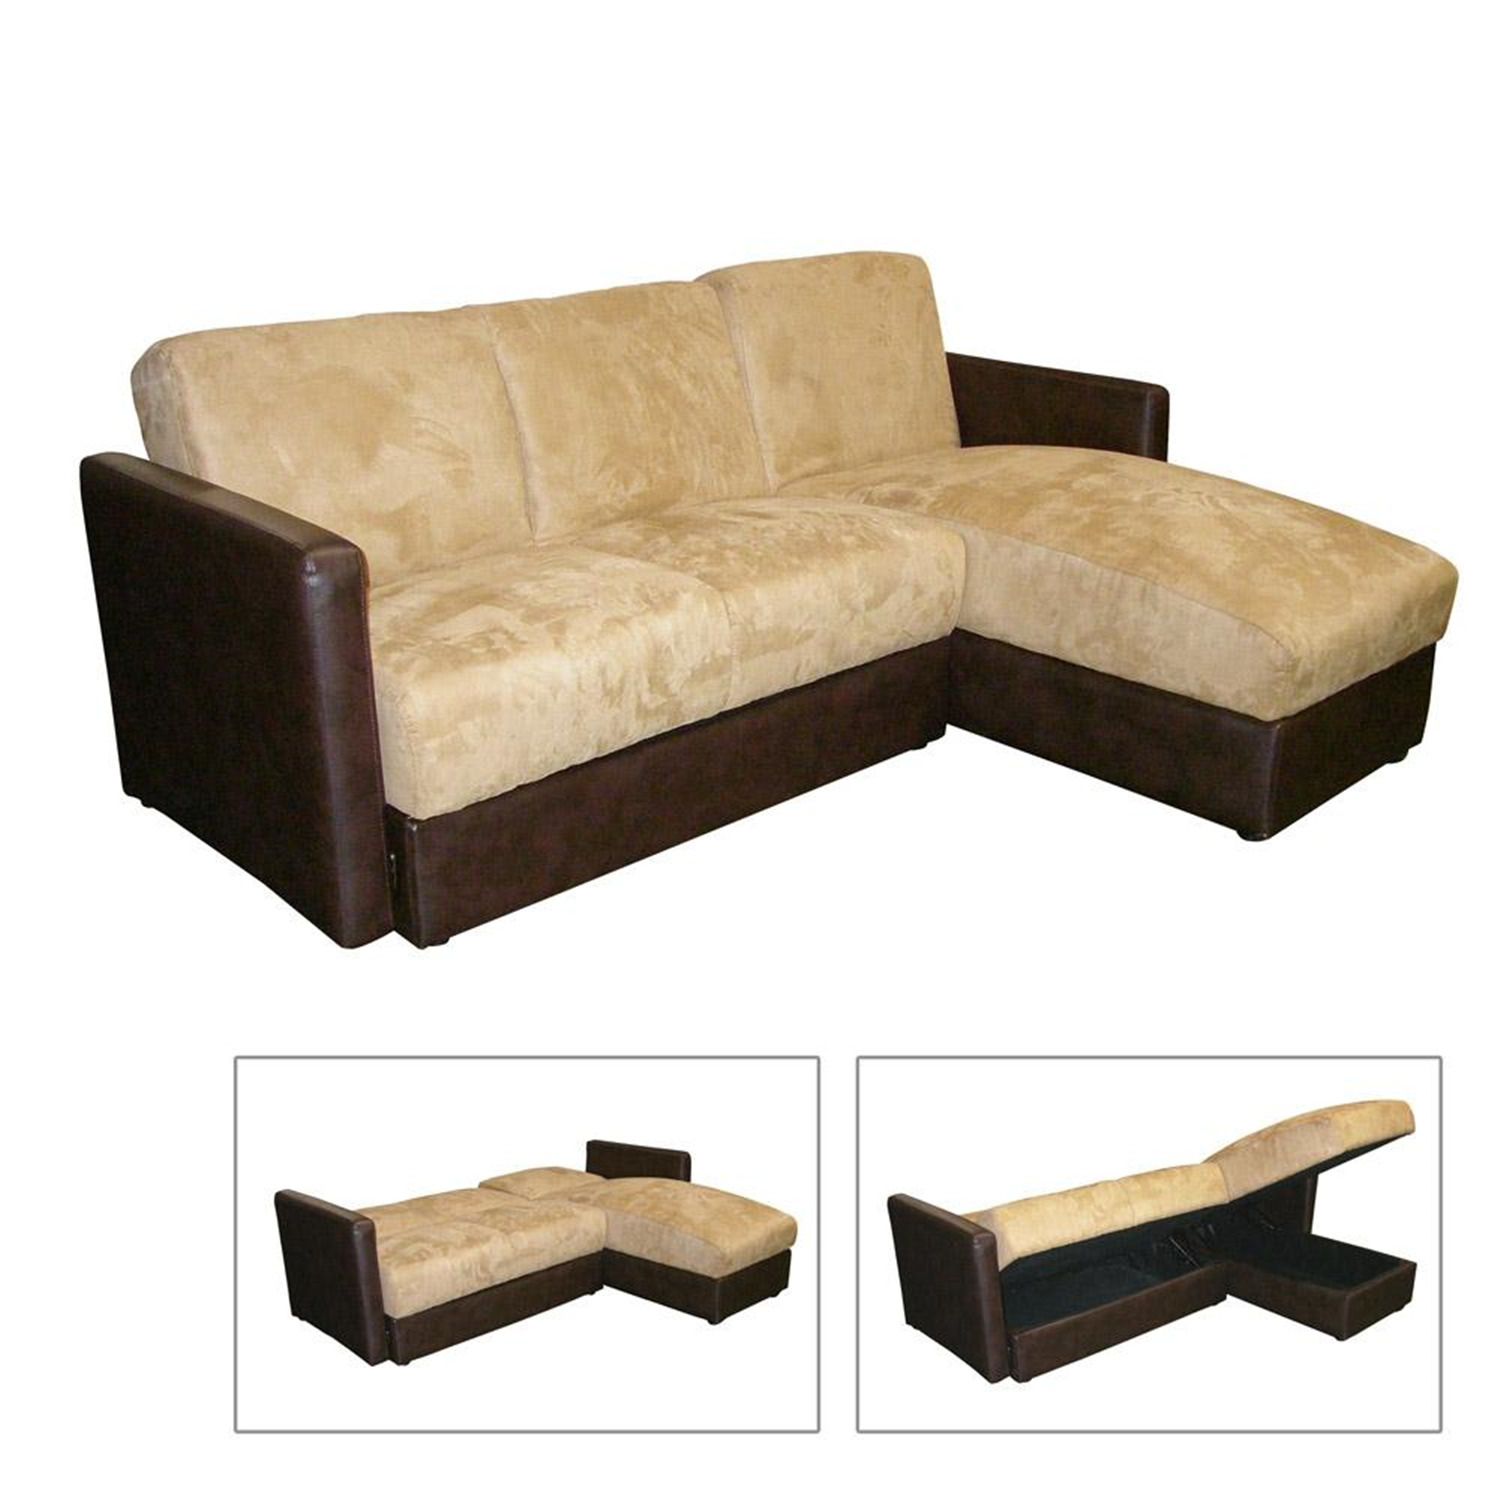 Ore international r8116cc sofa bed with storage for Sectional sleeper sofa with storage and pillows